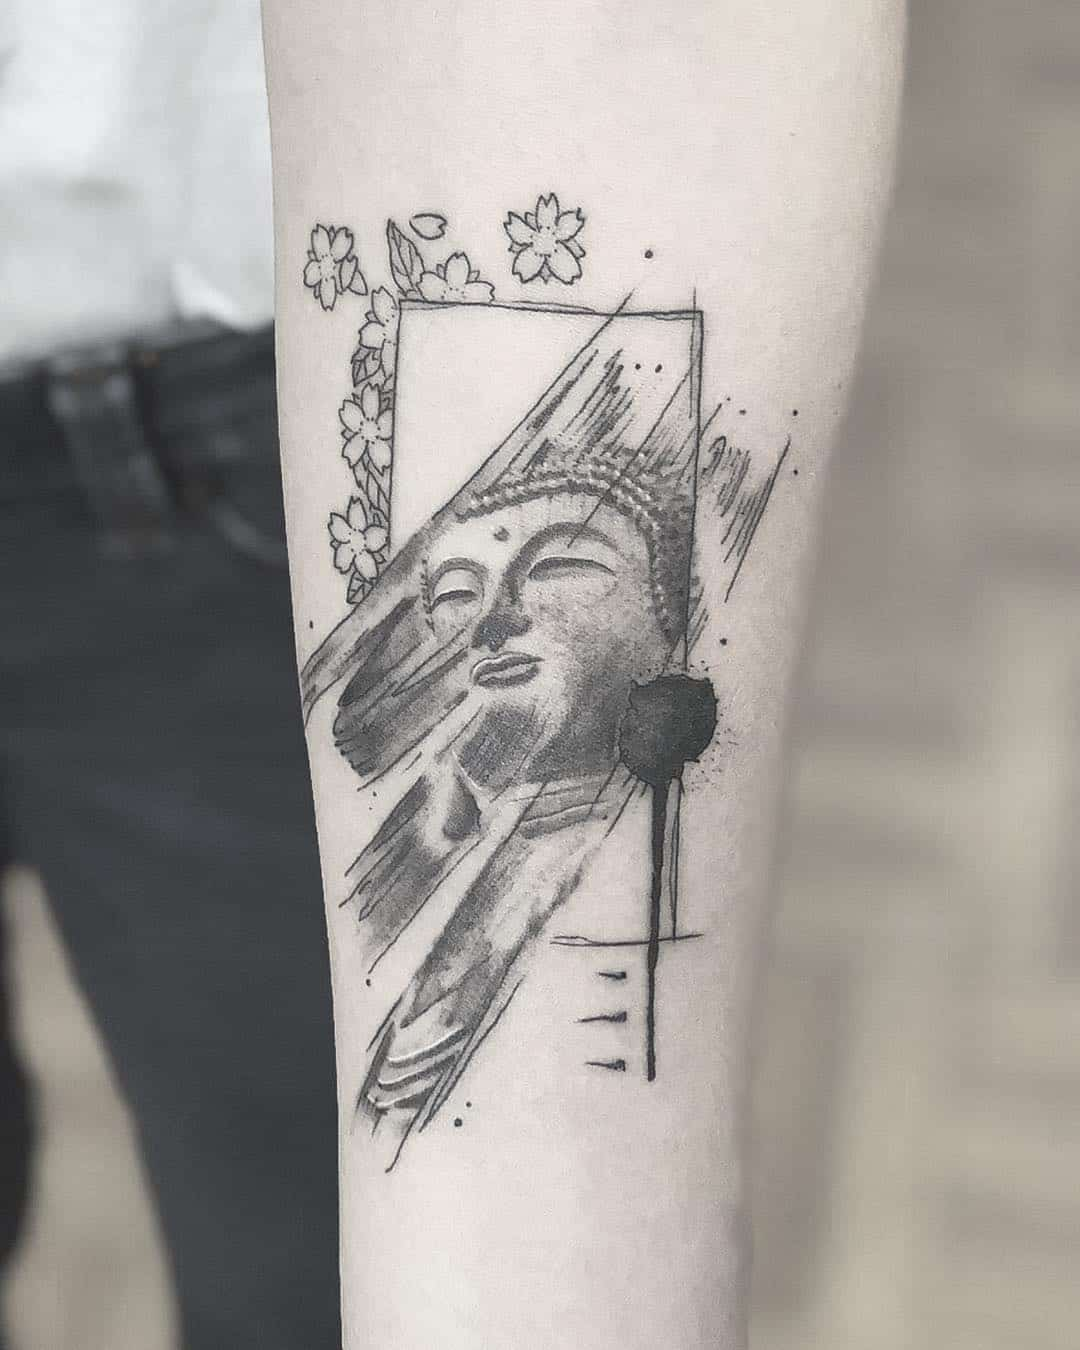 Tattoo by @rbn_says